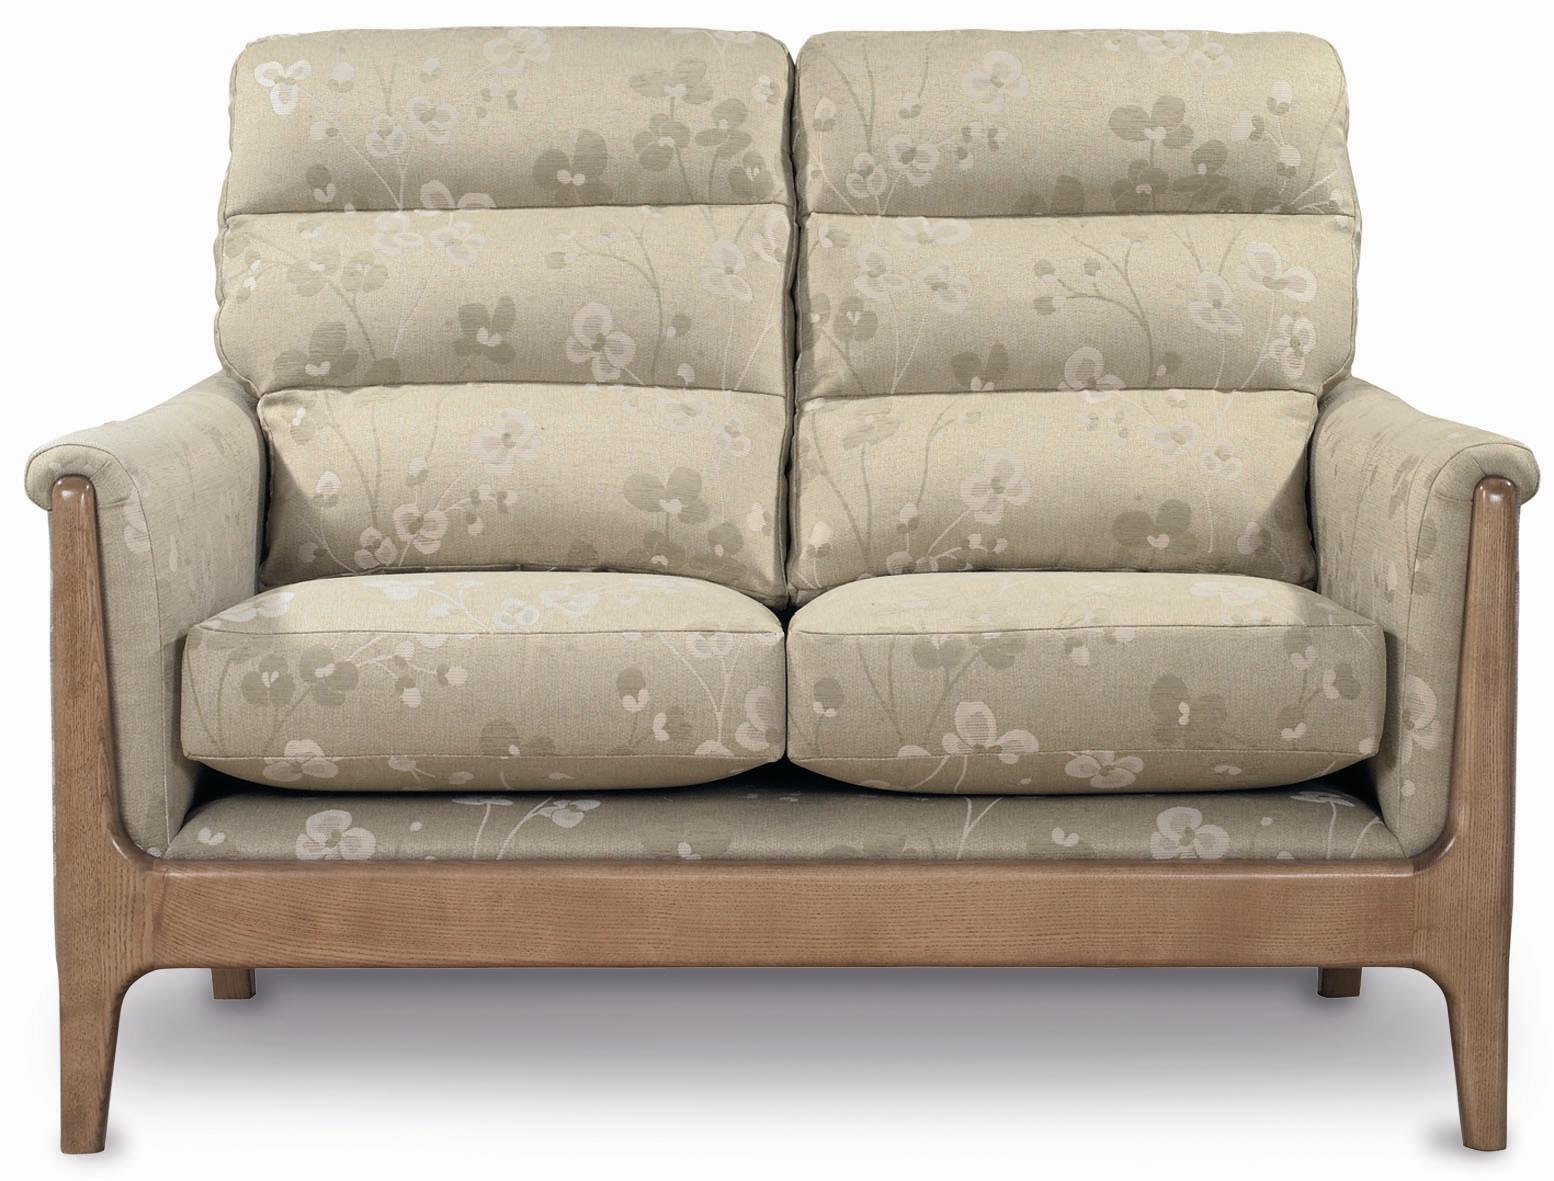 Sofa 75cm Depth Cintique Lydia Sofa Collection From Tannahill Furniture Ltd